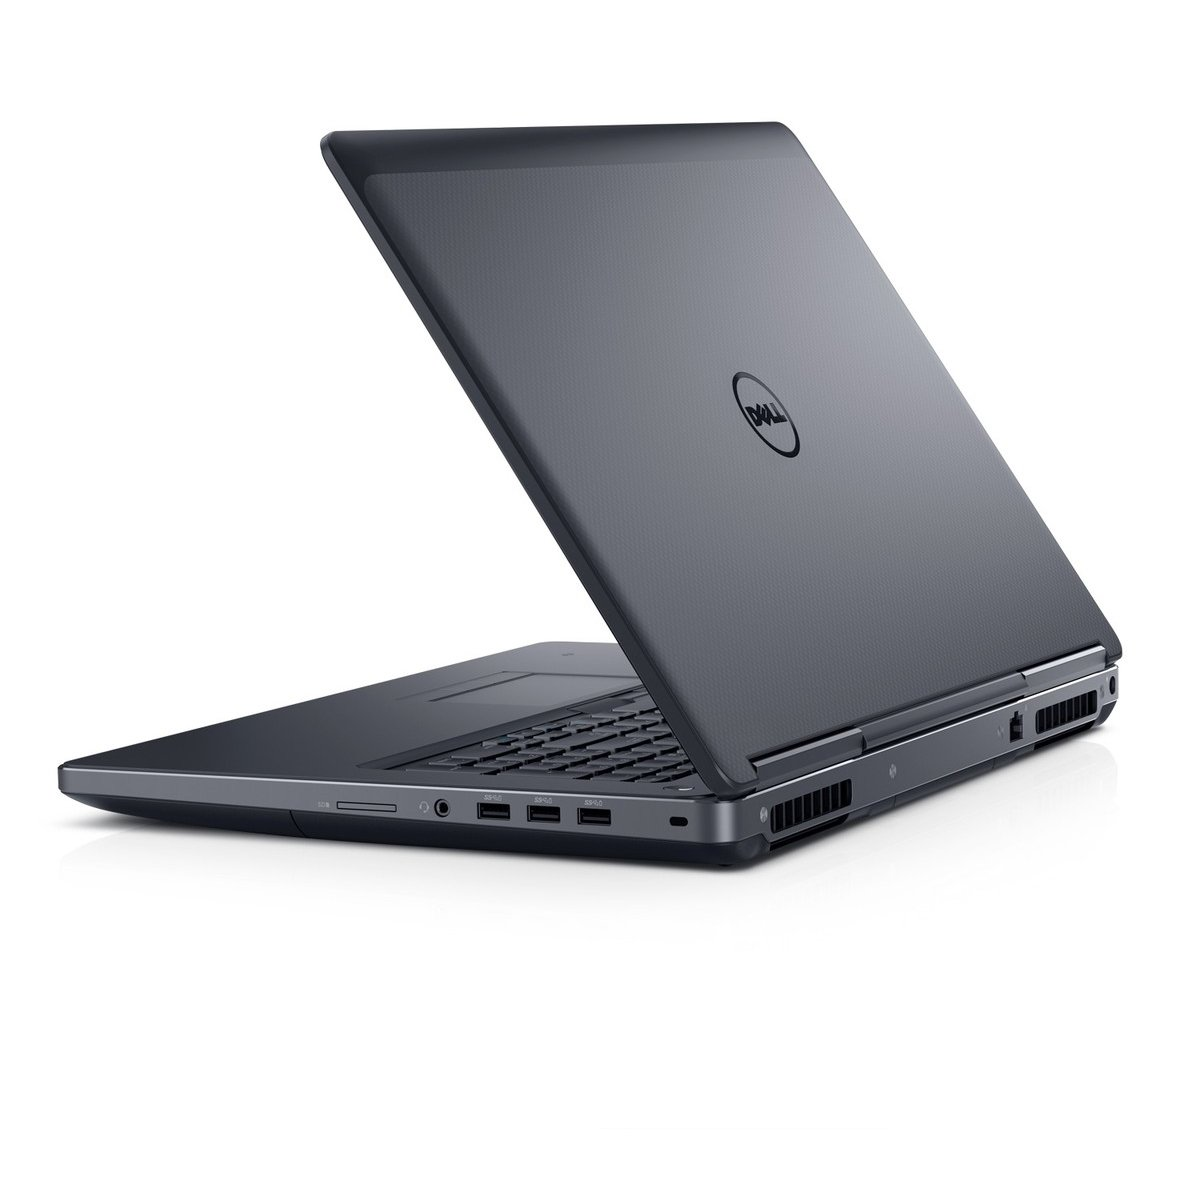 Dell Precision M7710 Intel Core i7-6820HQ X4 2.7GHz 32GB 512GB SSD, Black (Renewed)